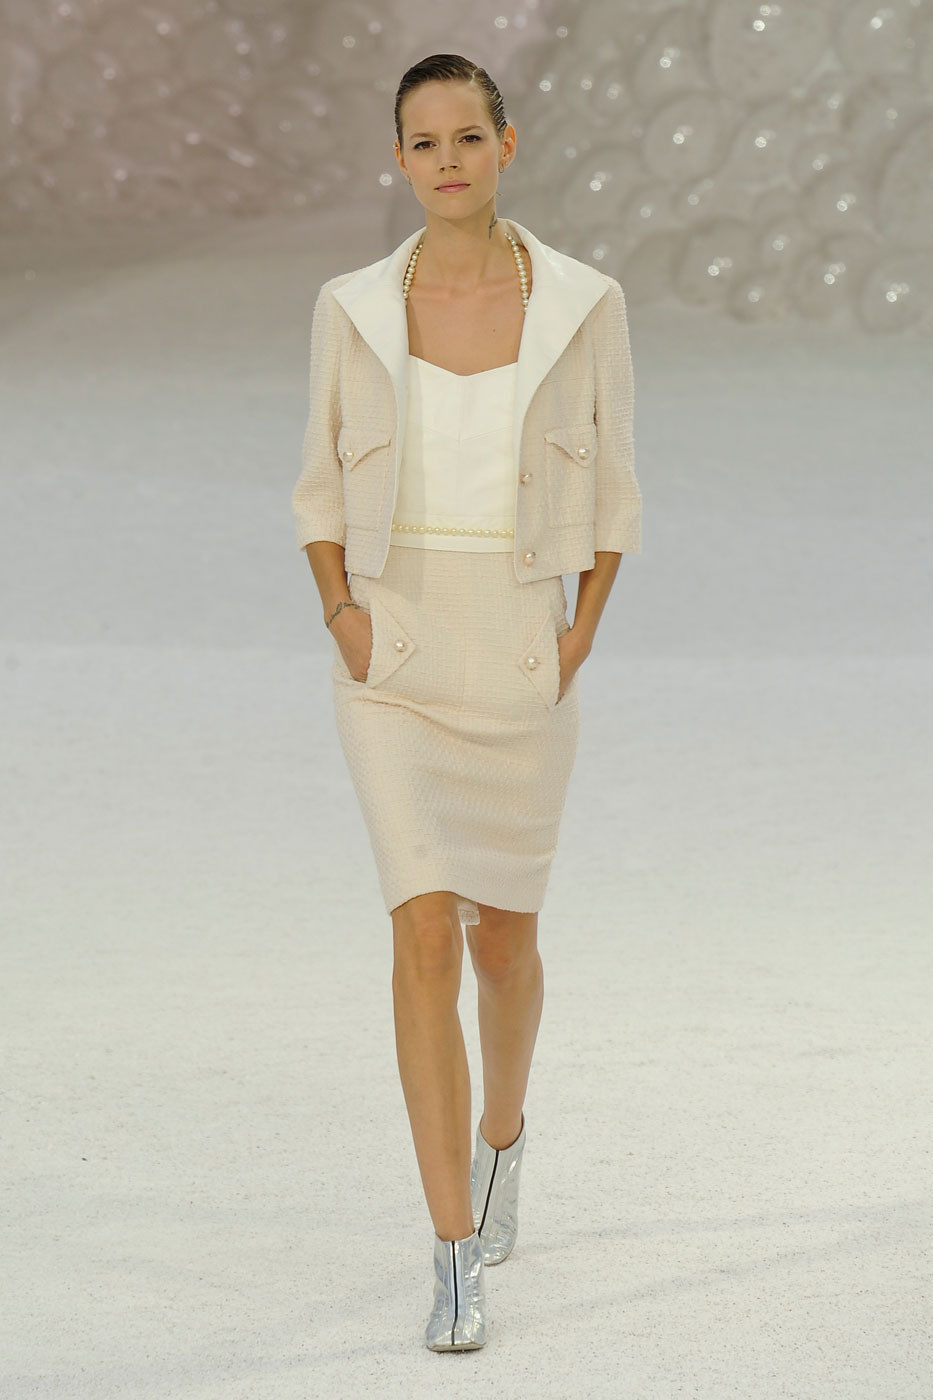 chanel spring 2012 runway pictures livingly